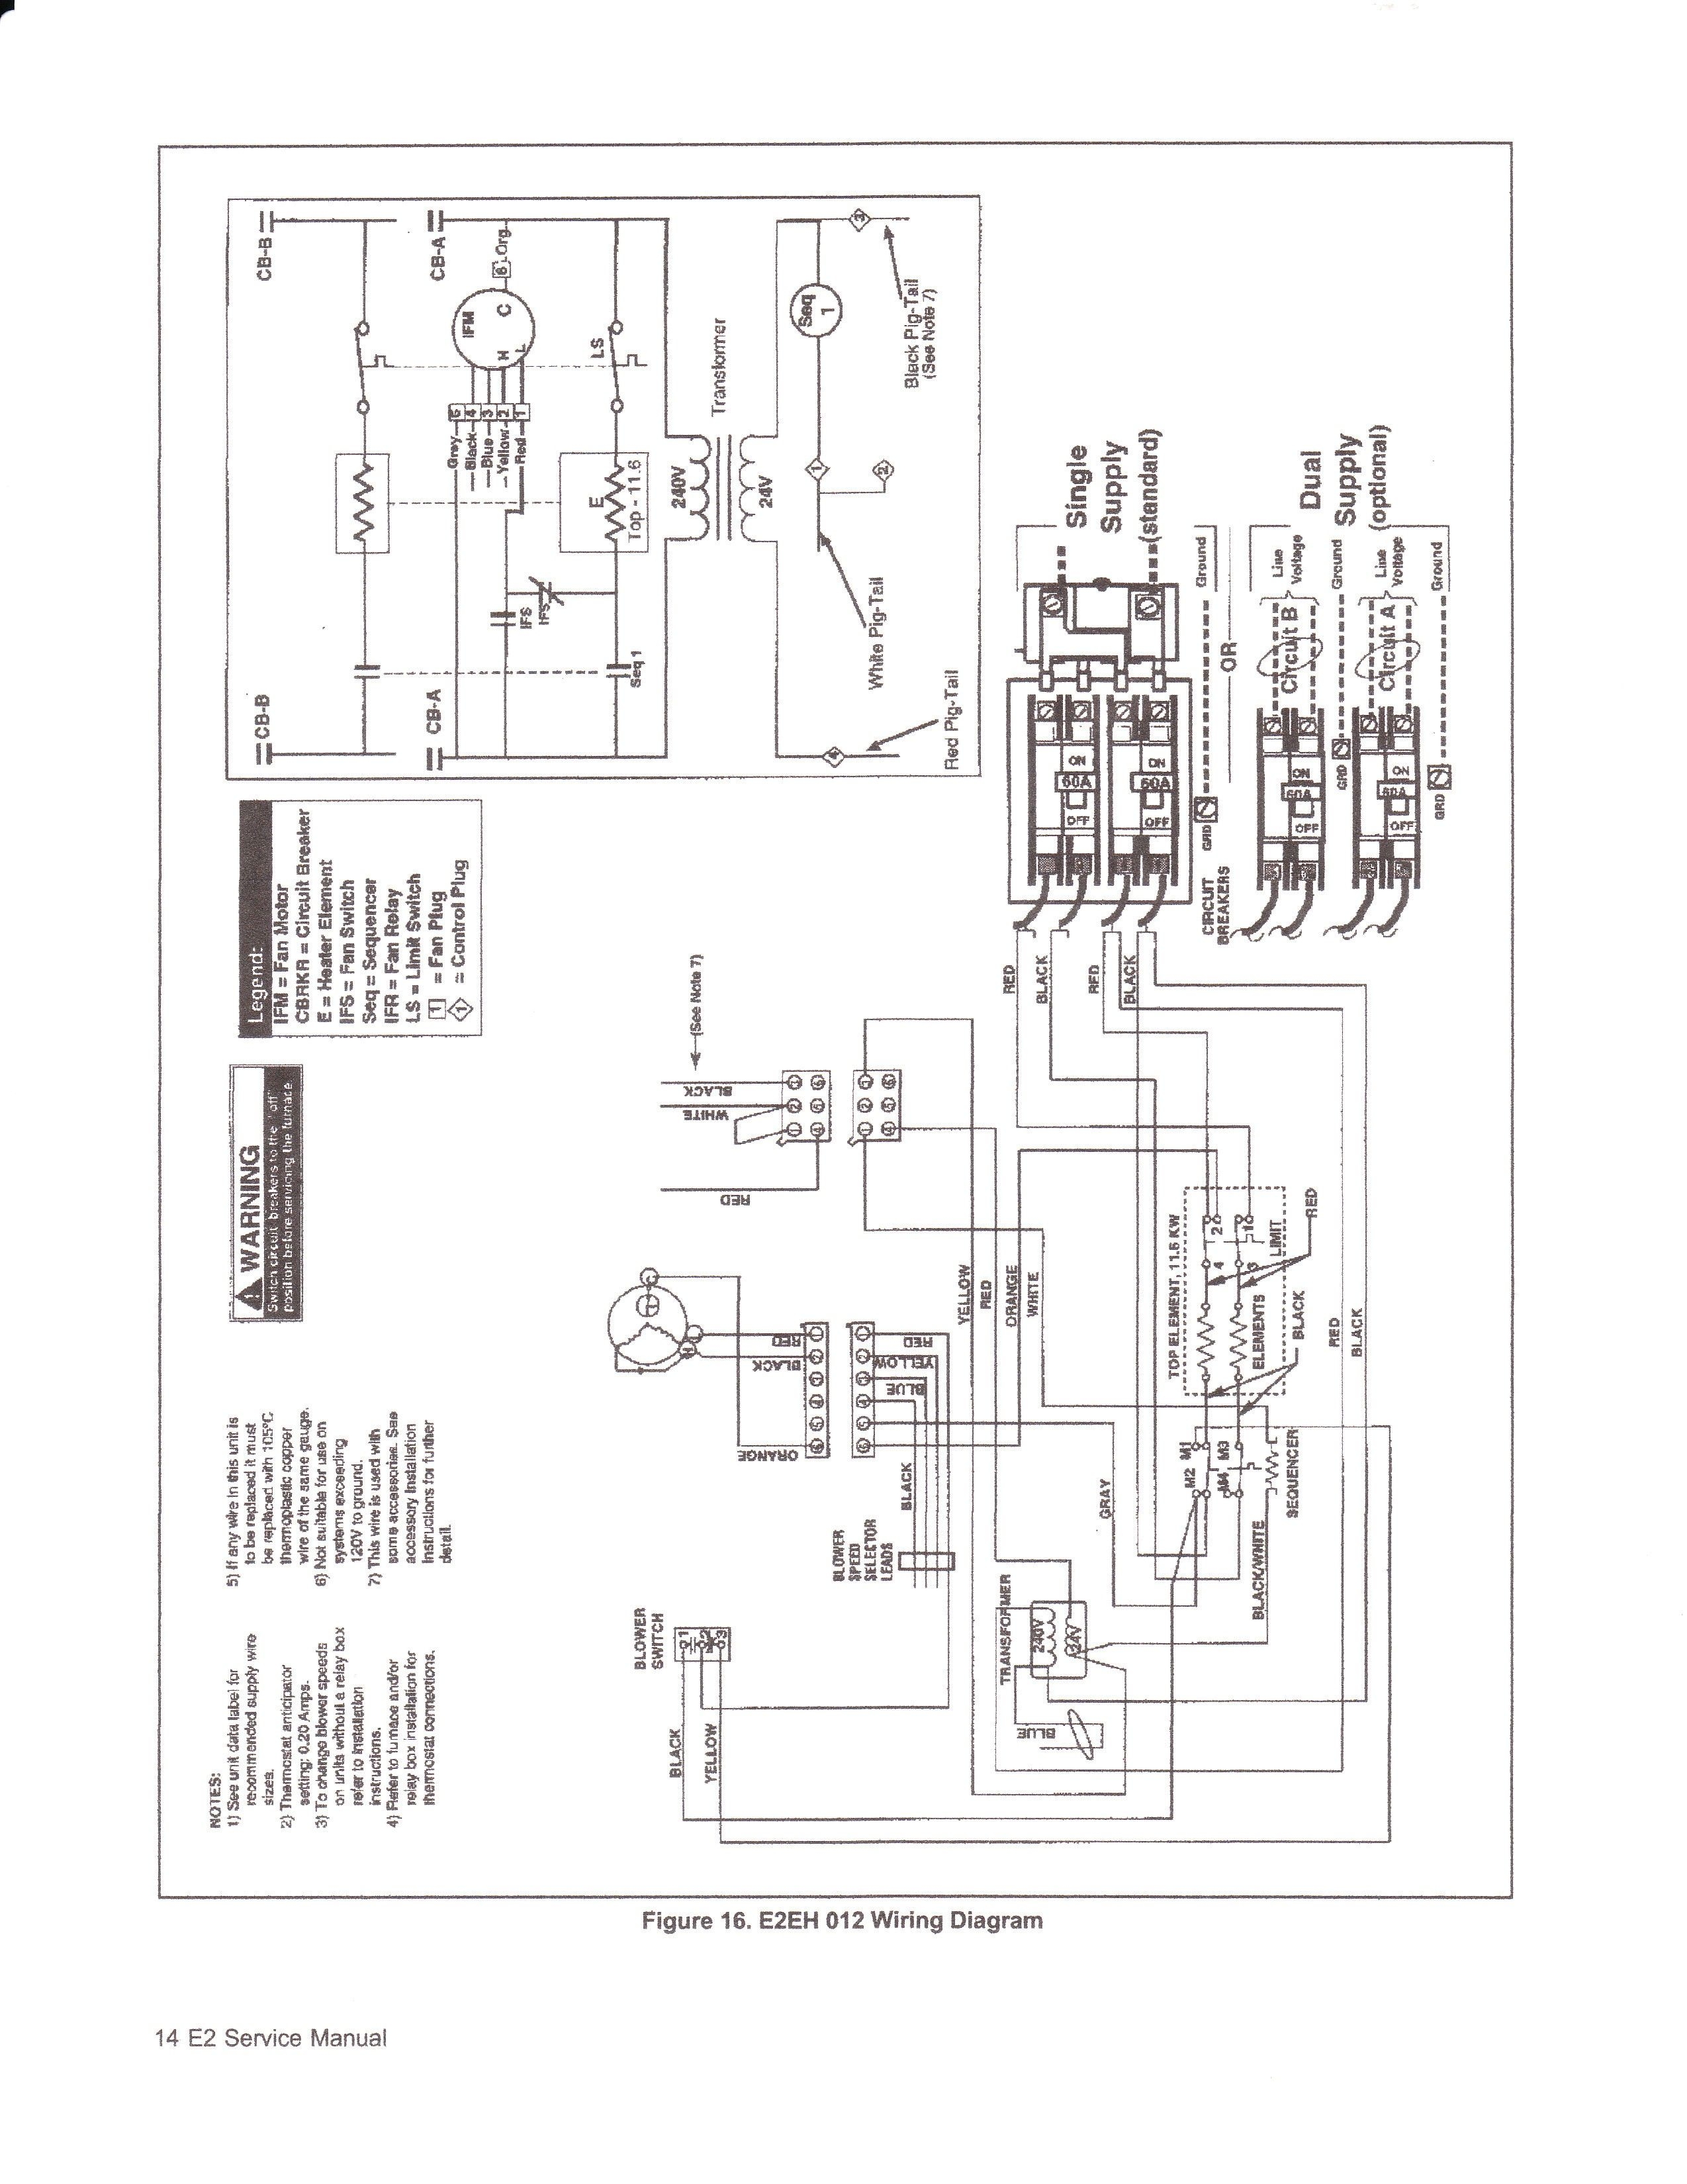 Unique Westinghouse Electric Furnace Wiring Diagram Diagram